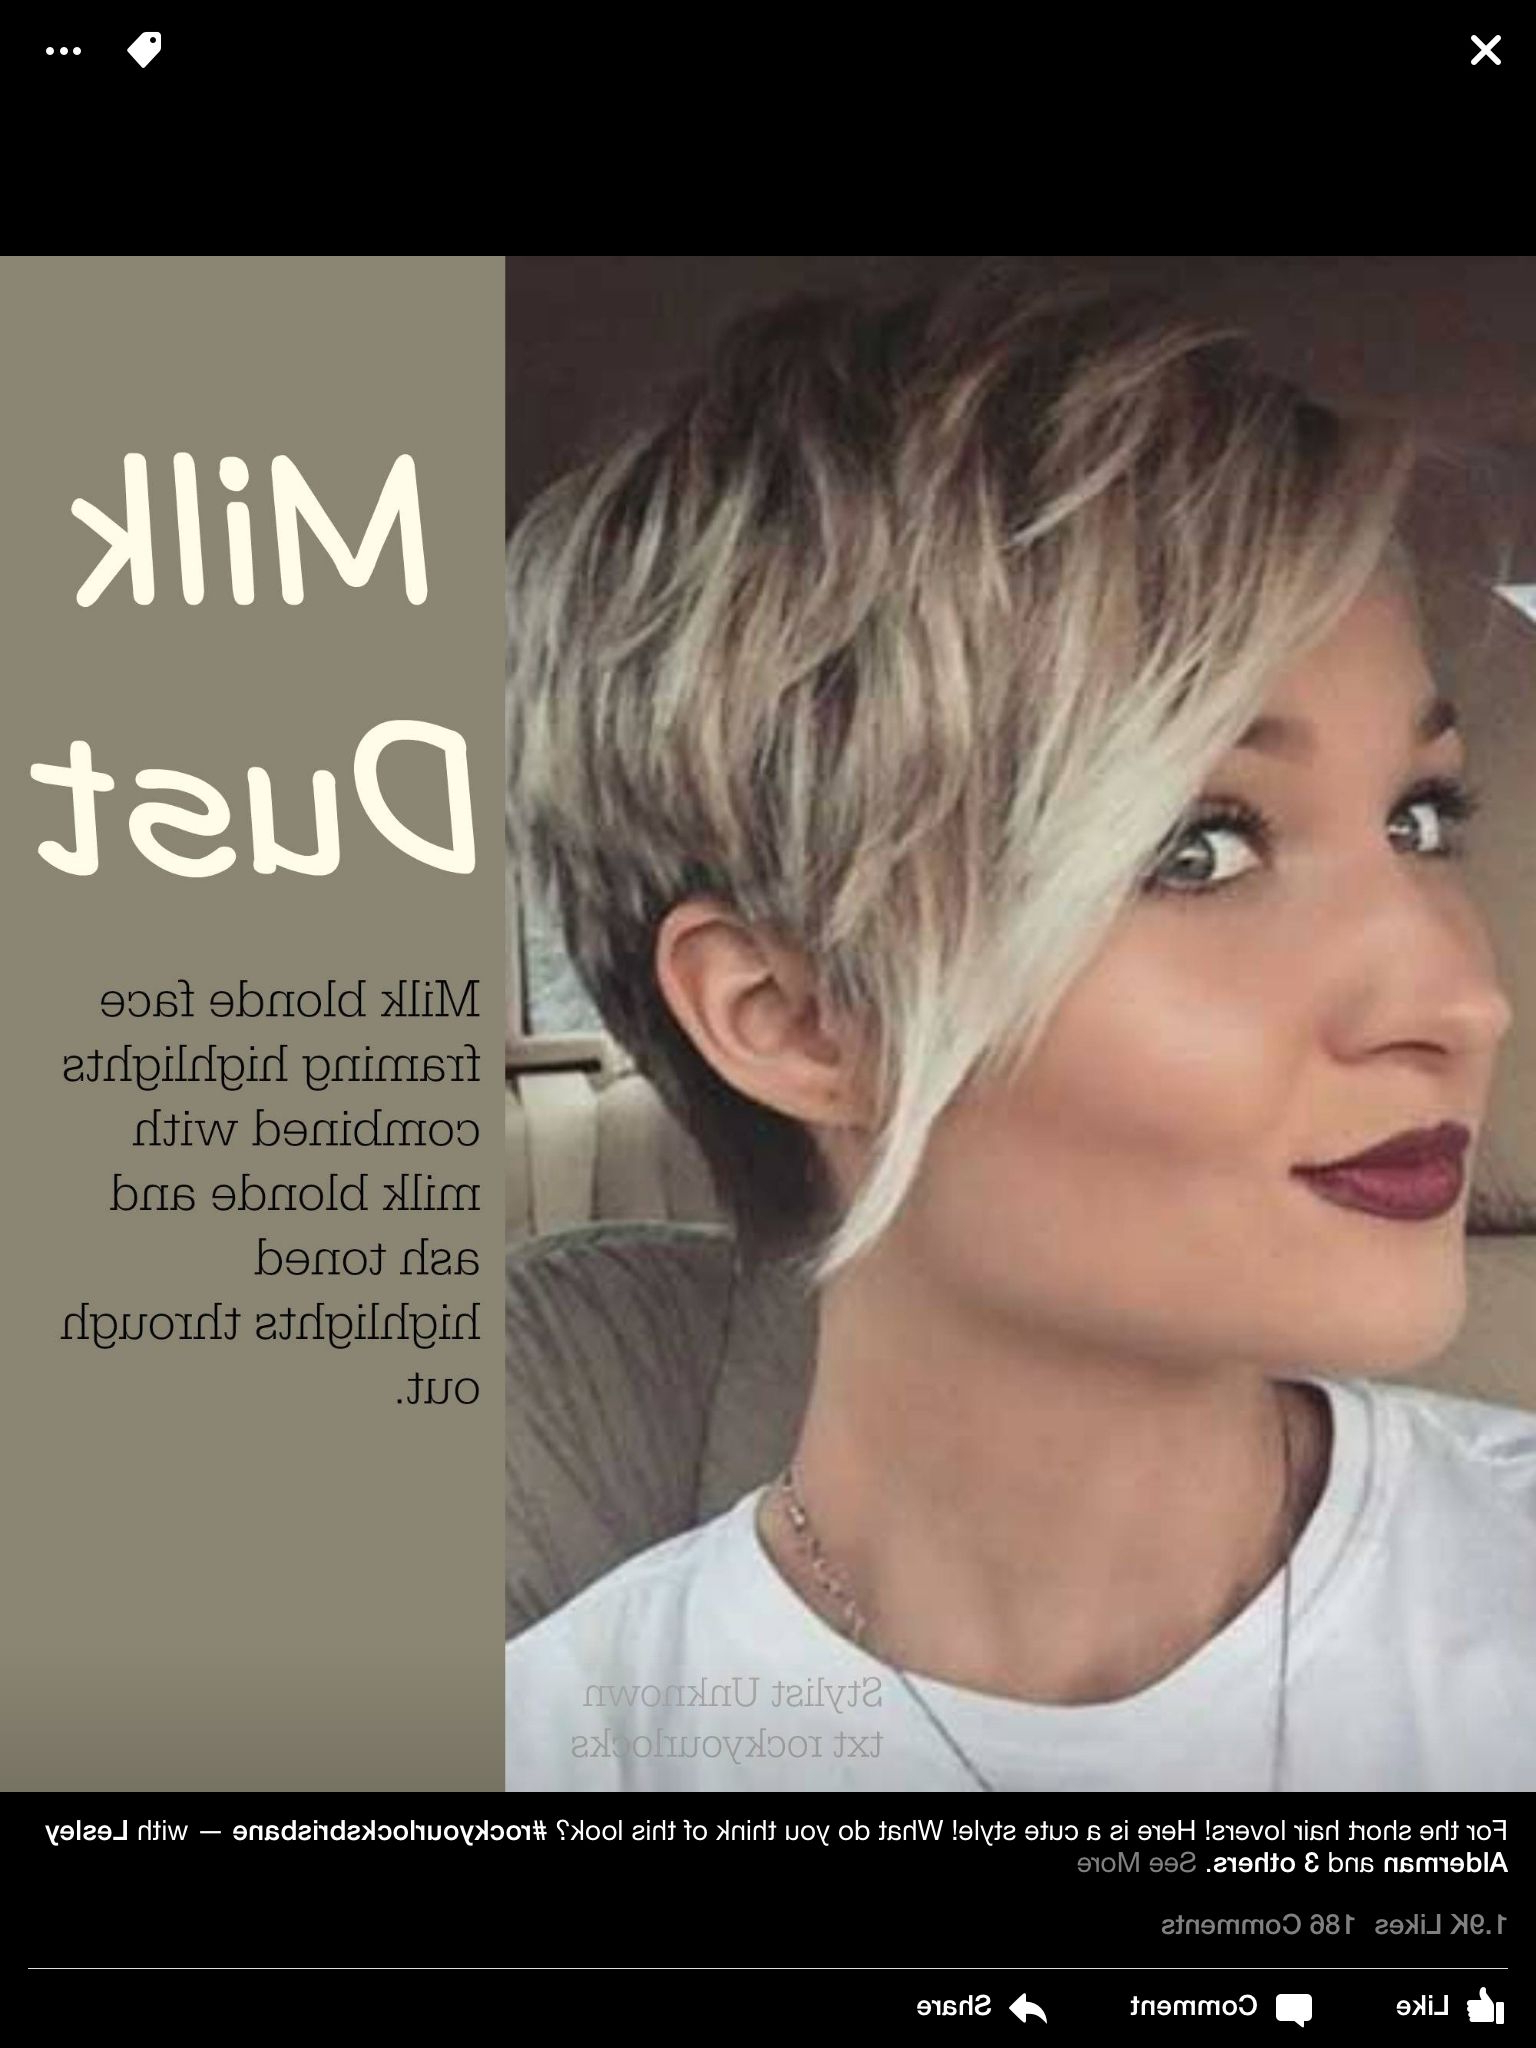 Short Hair Highlights Long Pixie | Short Hair Inspiration In 2018 Regarding Highlighted Pixie Bob Hairstyles With Long Bangs (Gallery 1 of 20)